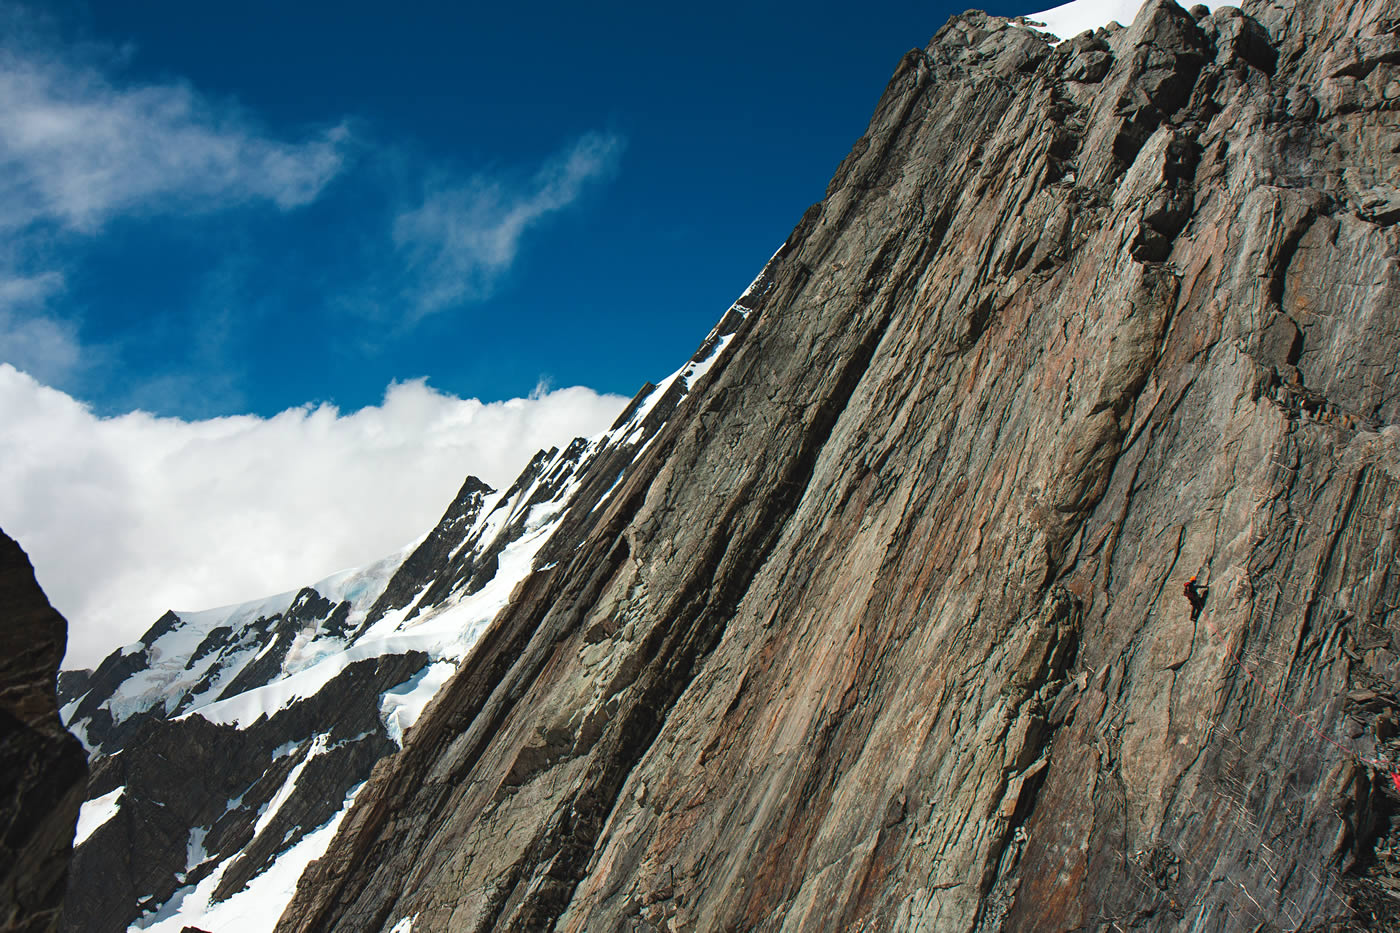 Jamie Vinton-Boot near the end of Stuntman and Chronic (5.9, five pitches) before the West Rib (5.8, eight pitches) of Mt. Walter. In the background is the West Ridge of Elie de Beaumont. [Photo] Kester Brown